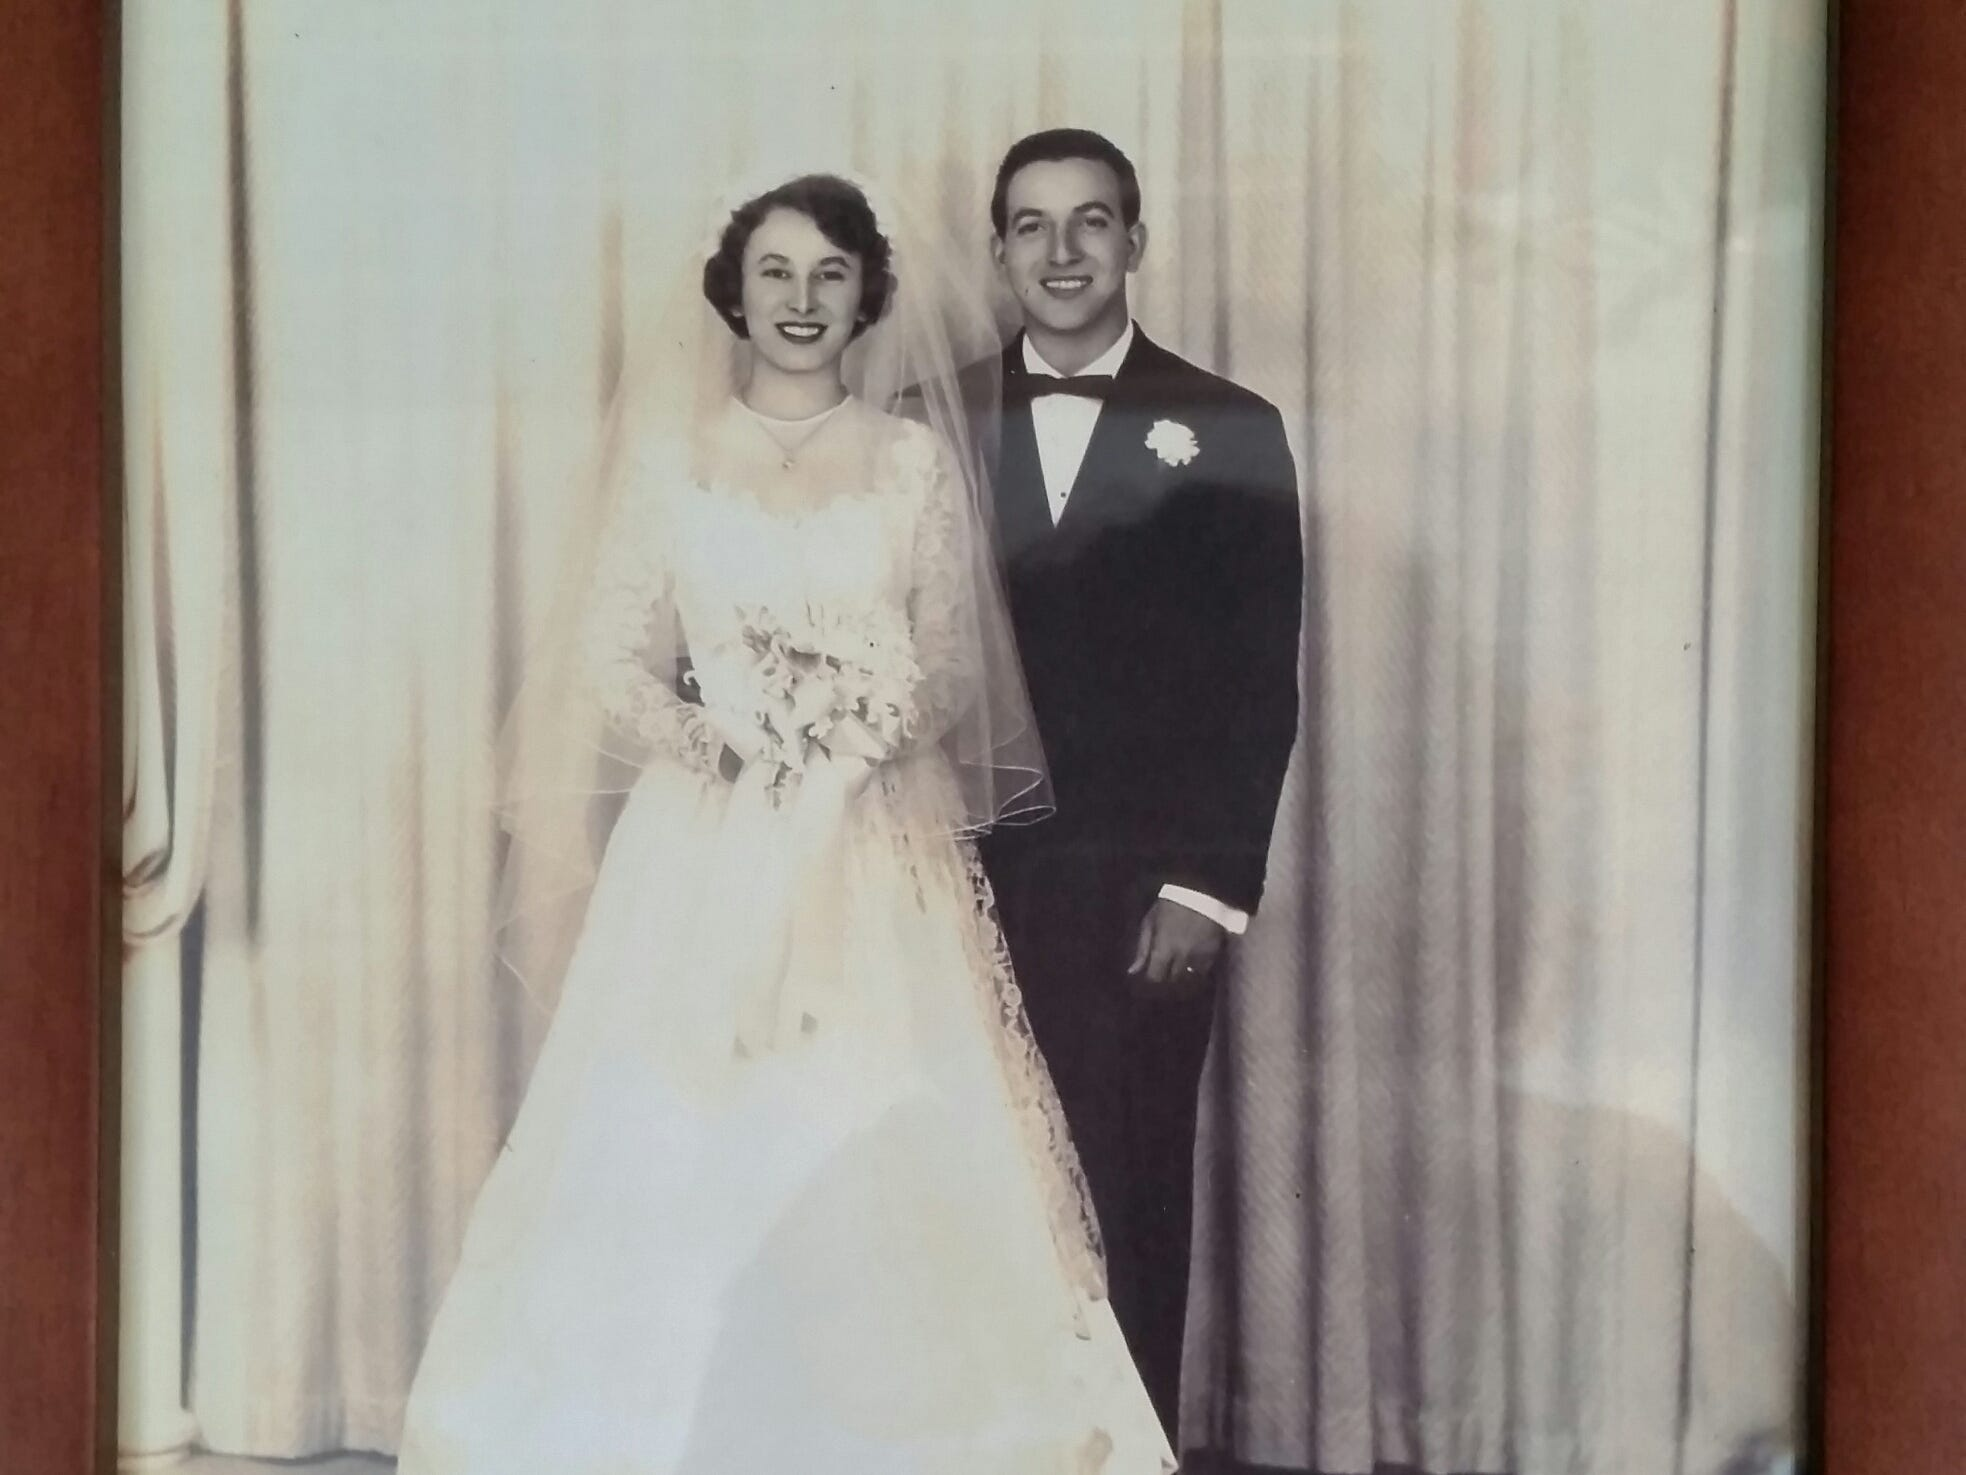 "Joe and Joann Bifano on their wedding day, Oct. 14, 1950 at St. John Evangelist Catholic Church in Kohler.  According to their daughter, Mary:  ""My dad was playing drums in a band for a private party at The Rathskellar, the basement of The Hoffbrau, now 8th Street Ale Haus. At the same time, my mom was attending a wedding shower upstairs of The Hoffbrau.   My dad ended up taking my mom and a girlfriend home. Her girlfriend had the hots for my dad and I believe went downstairs to talk to him and ask for a ride home. My dad, however, had his eyes on my mom, so he dropped off my mom's girlfriend first, leaving the two of them in the car together for a short amount of time. I guess enough time, for my dad to try to woo her into going on a date!"""